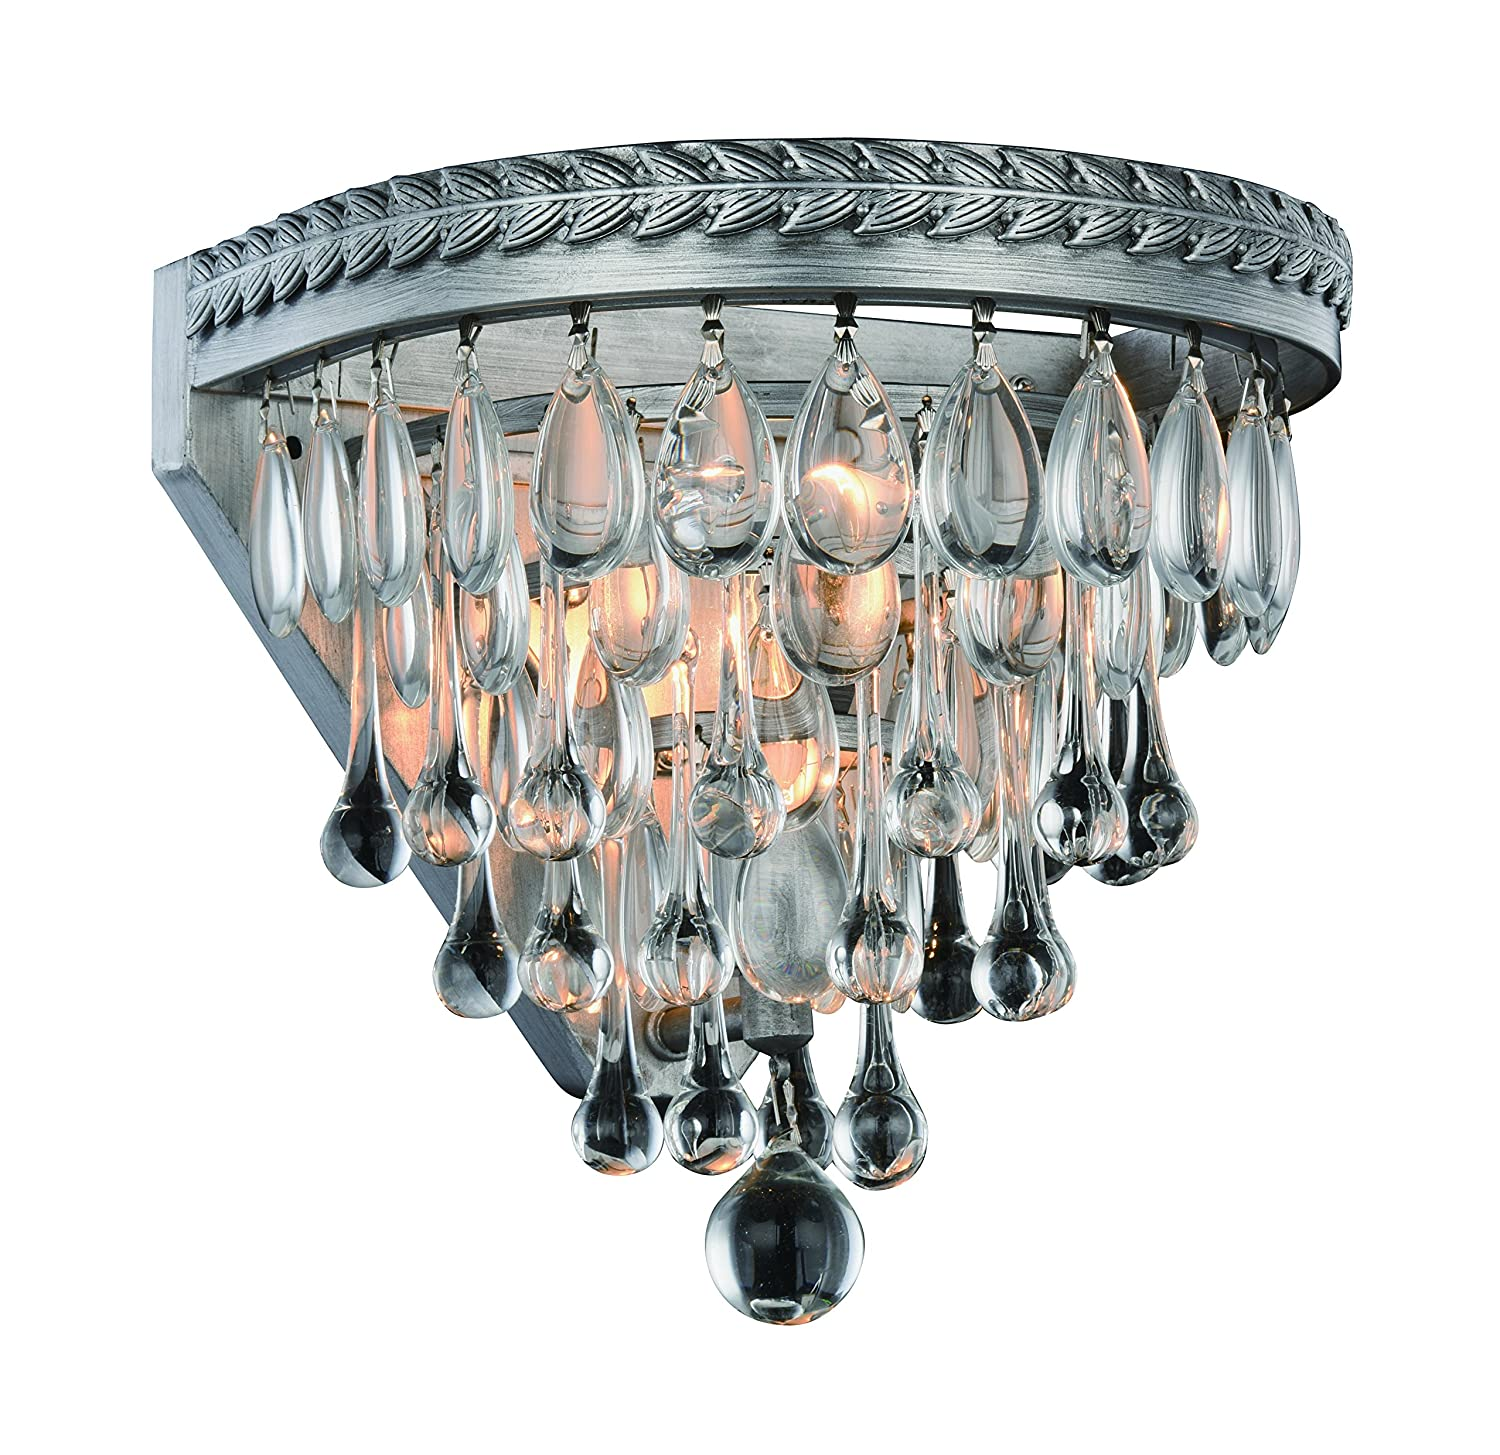 8 x 9 x 9 Antique Silver Finish OmniLucent ARCW9AS-3657 Nautic Collection Wall Sconce with 1 Light and Clear Crystals